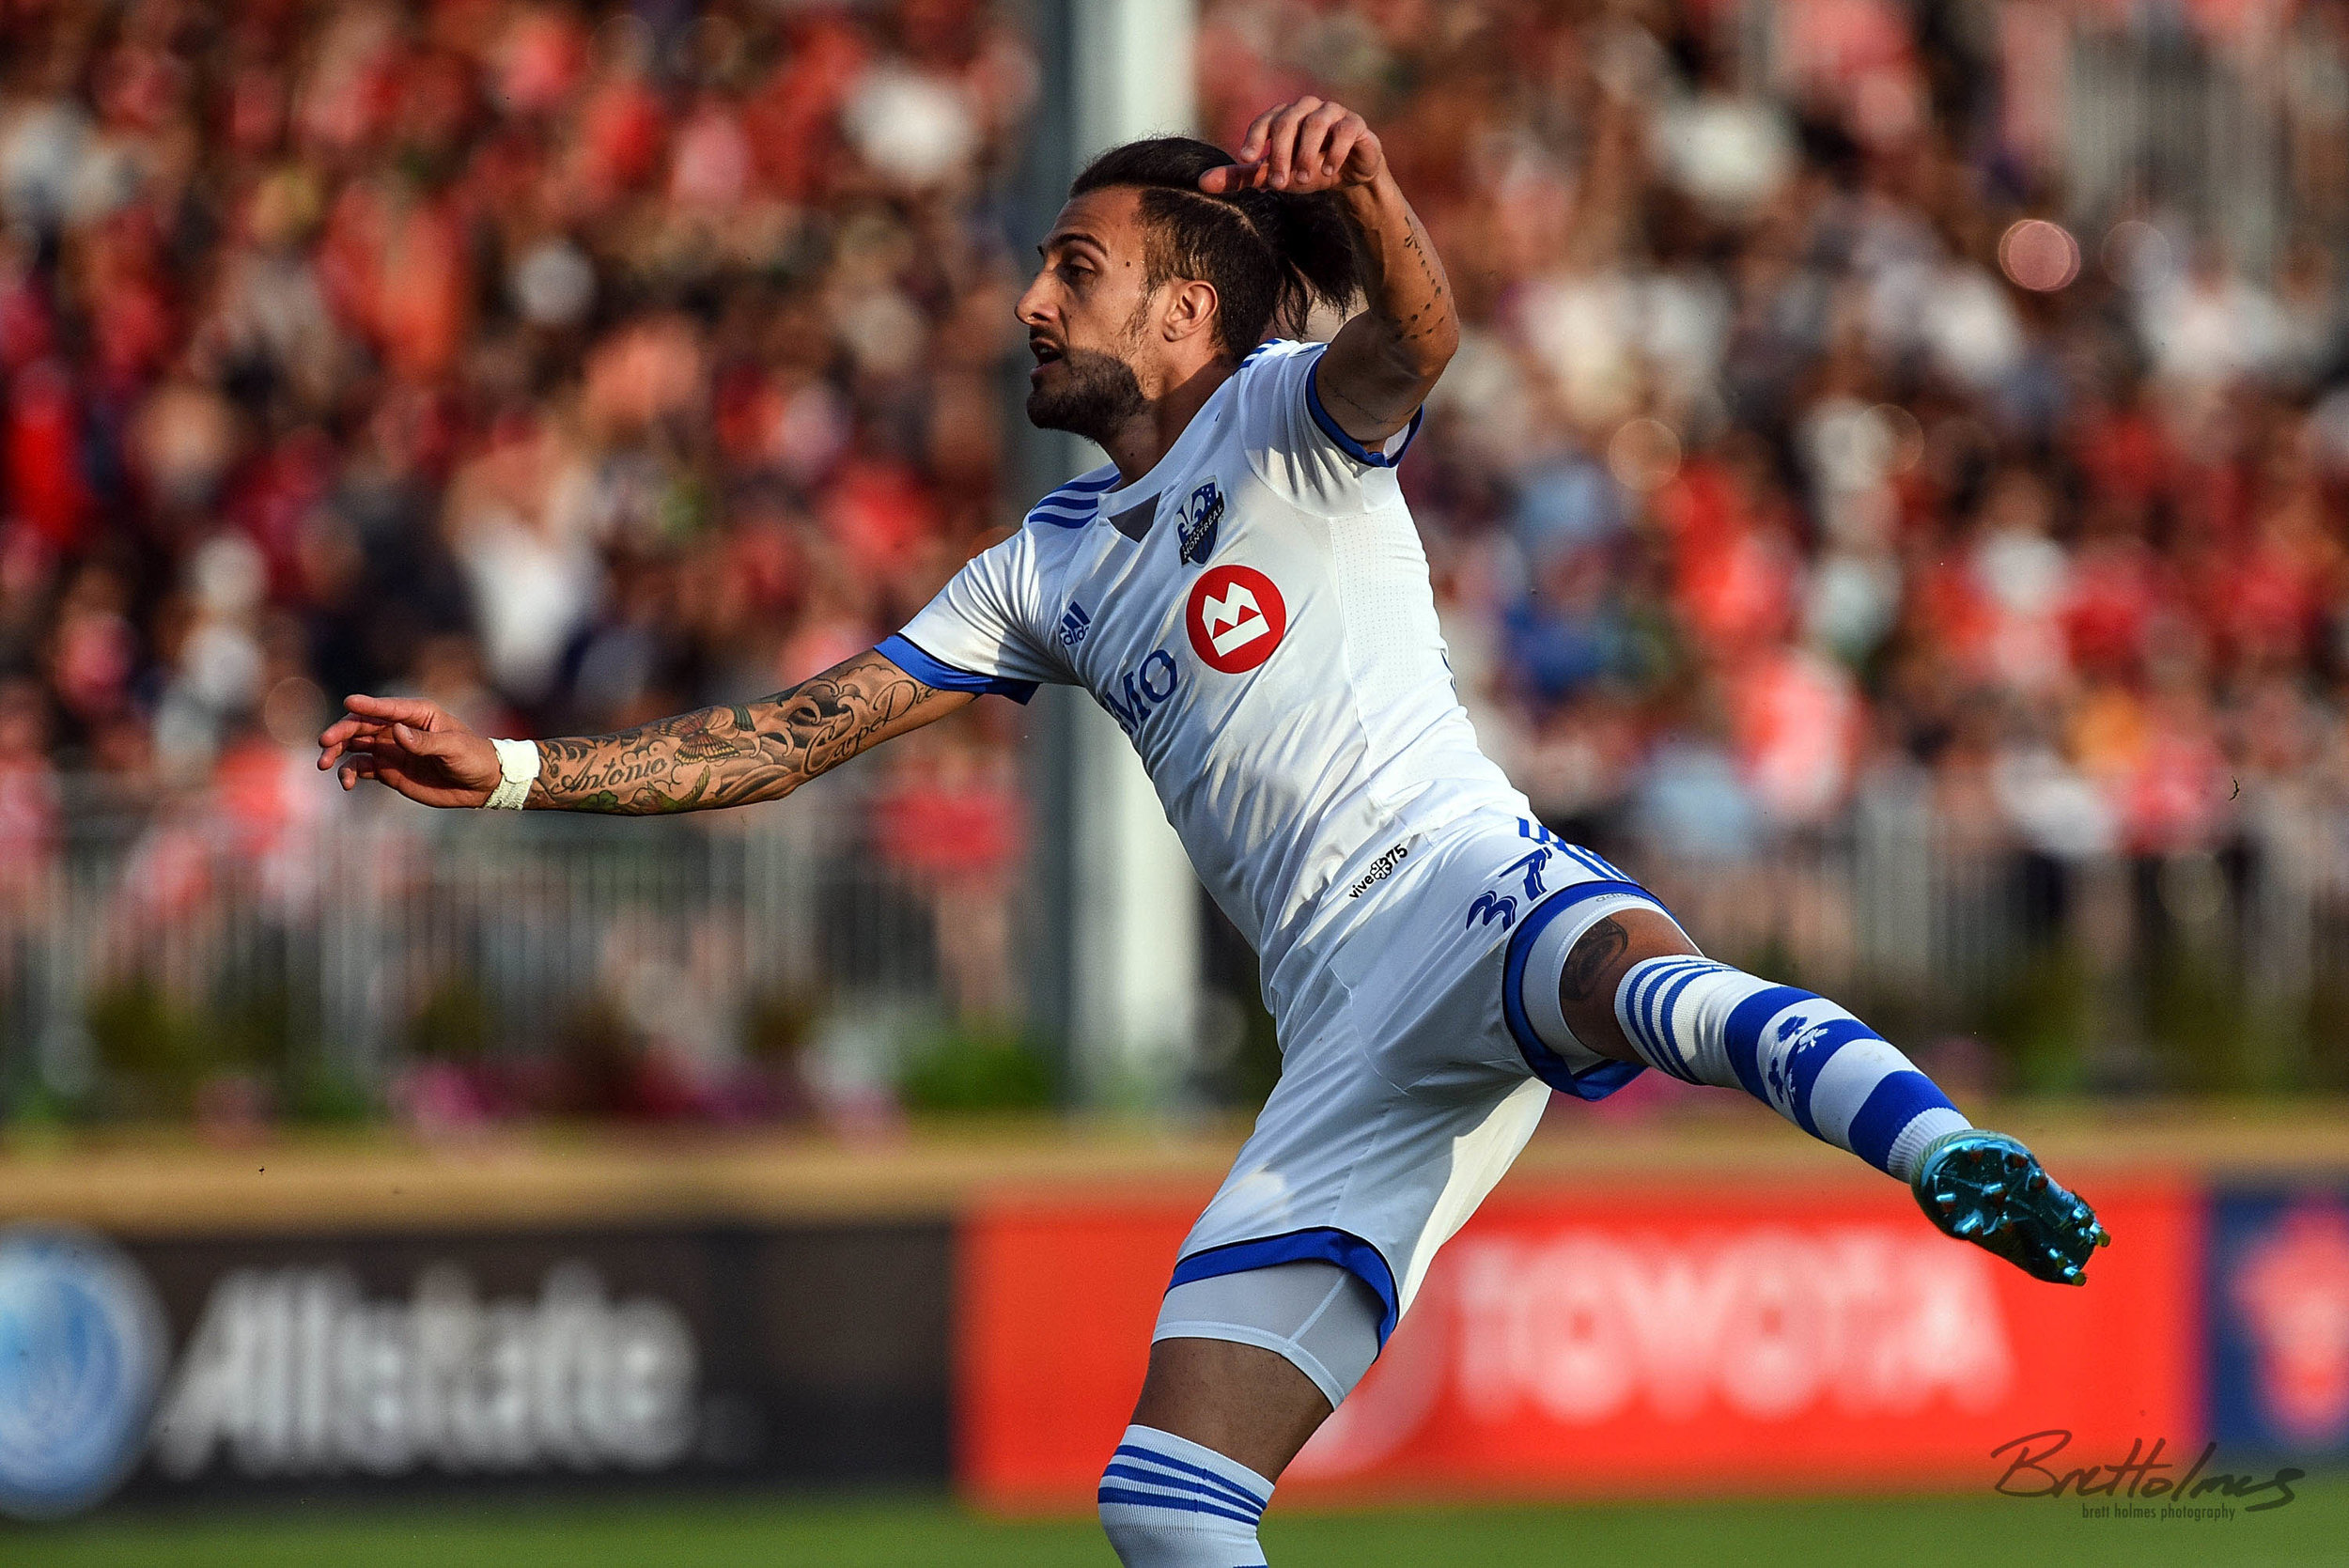 CALGARY, AB - AUGUST 14: Montreal Impact forward Maximiliano Urruti (37) attempts a shot on net during the first half of the second leg of a Canadian Championship semifinal match between the Montreal Impact and Cavalry FC on August 14, 2019, at ATCO Field at Spruce Meadows in Calgary, AB. (Photo by Brett Holmes/Icon Sportswire)